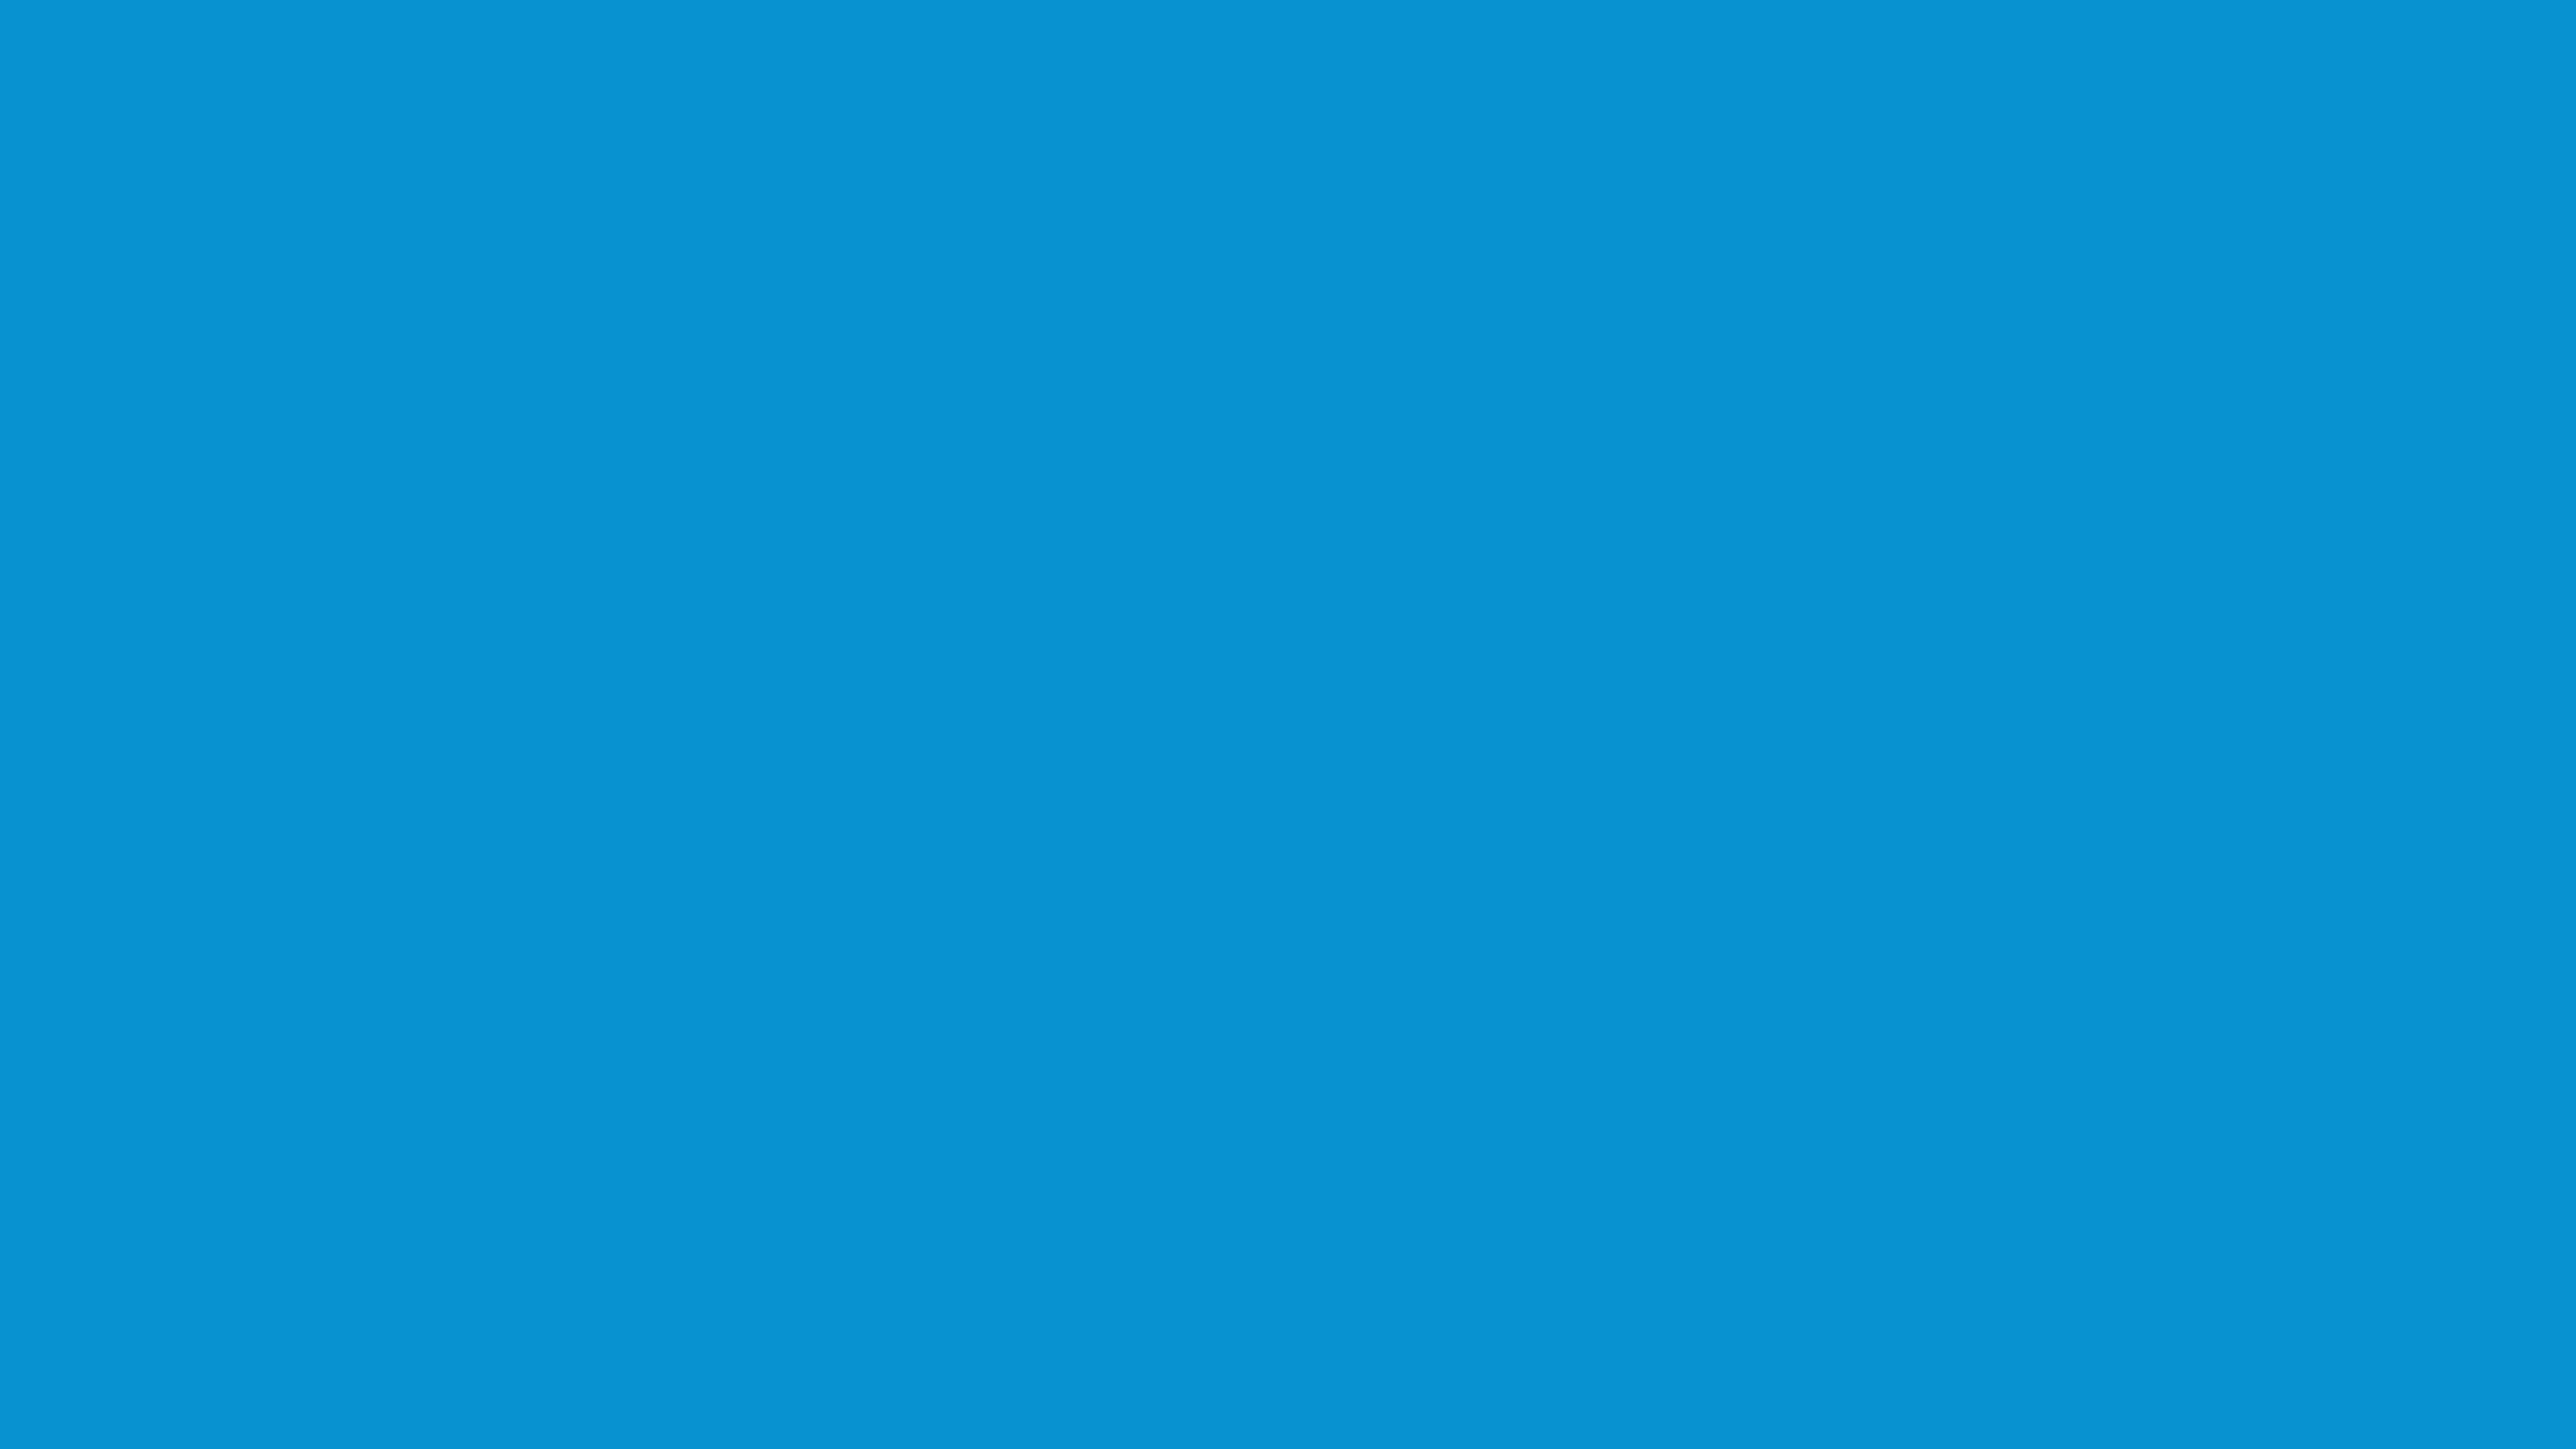 4096x2304 Rich Electric Blue Solid Color Background